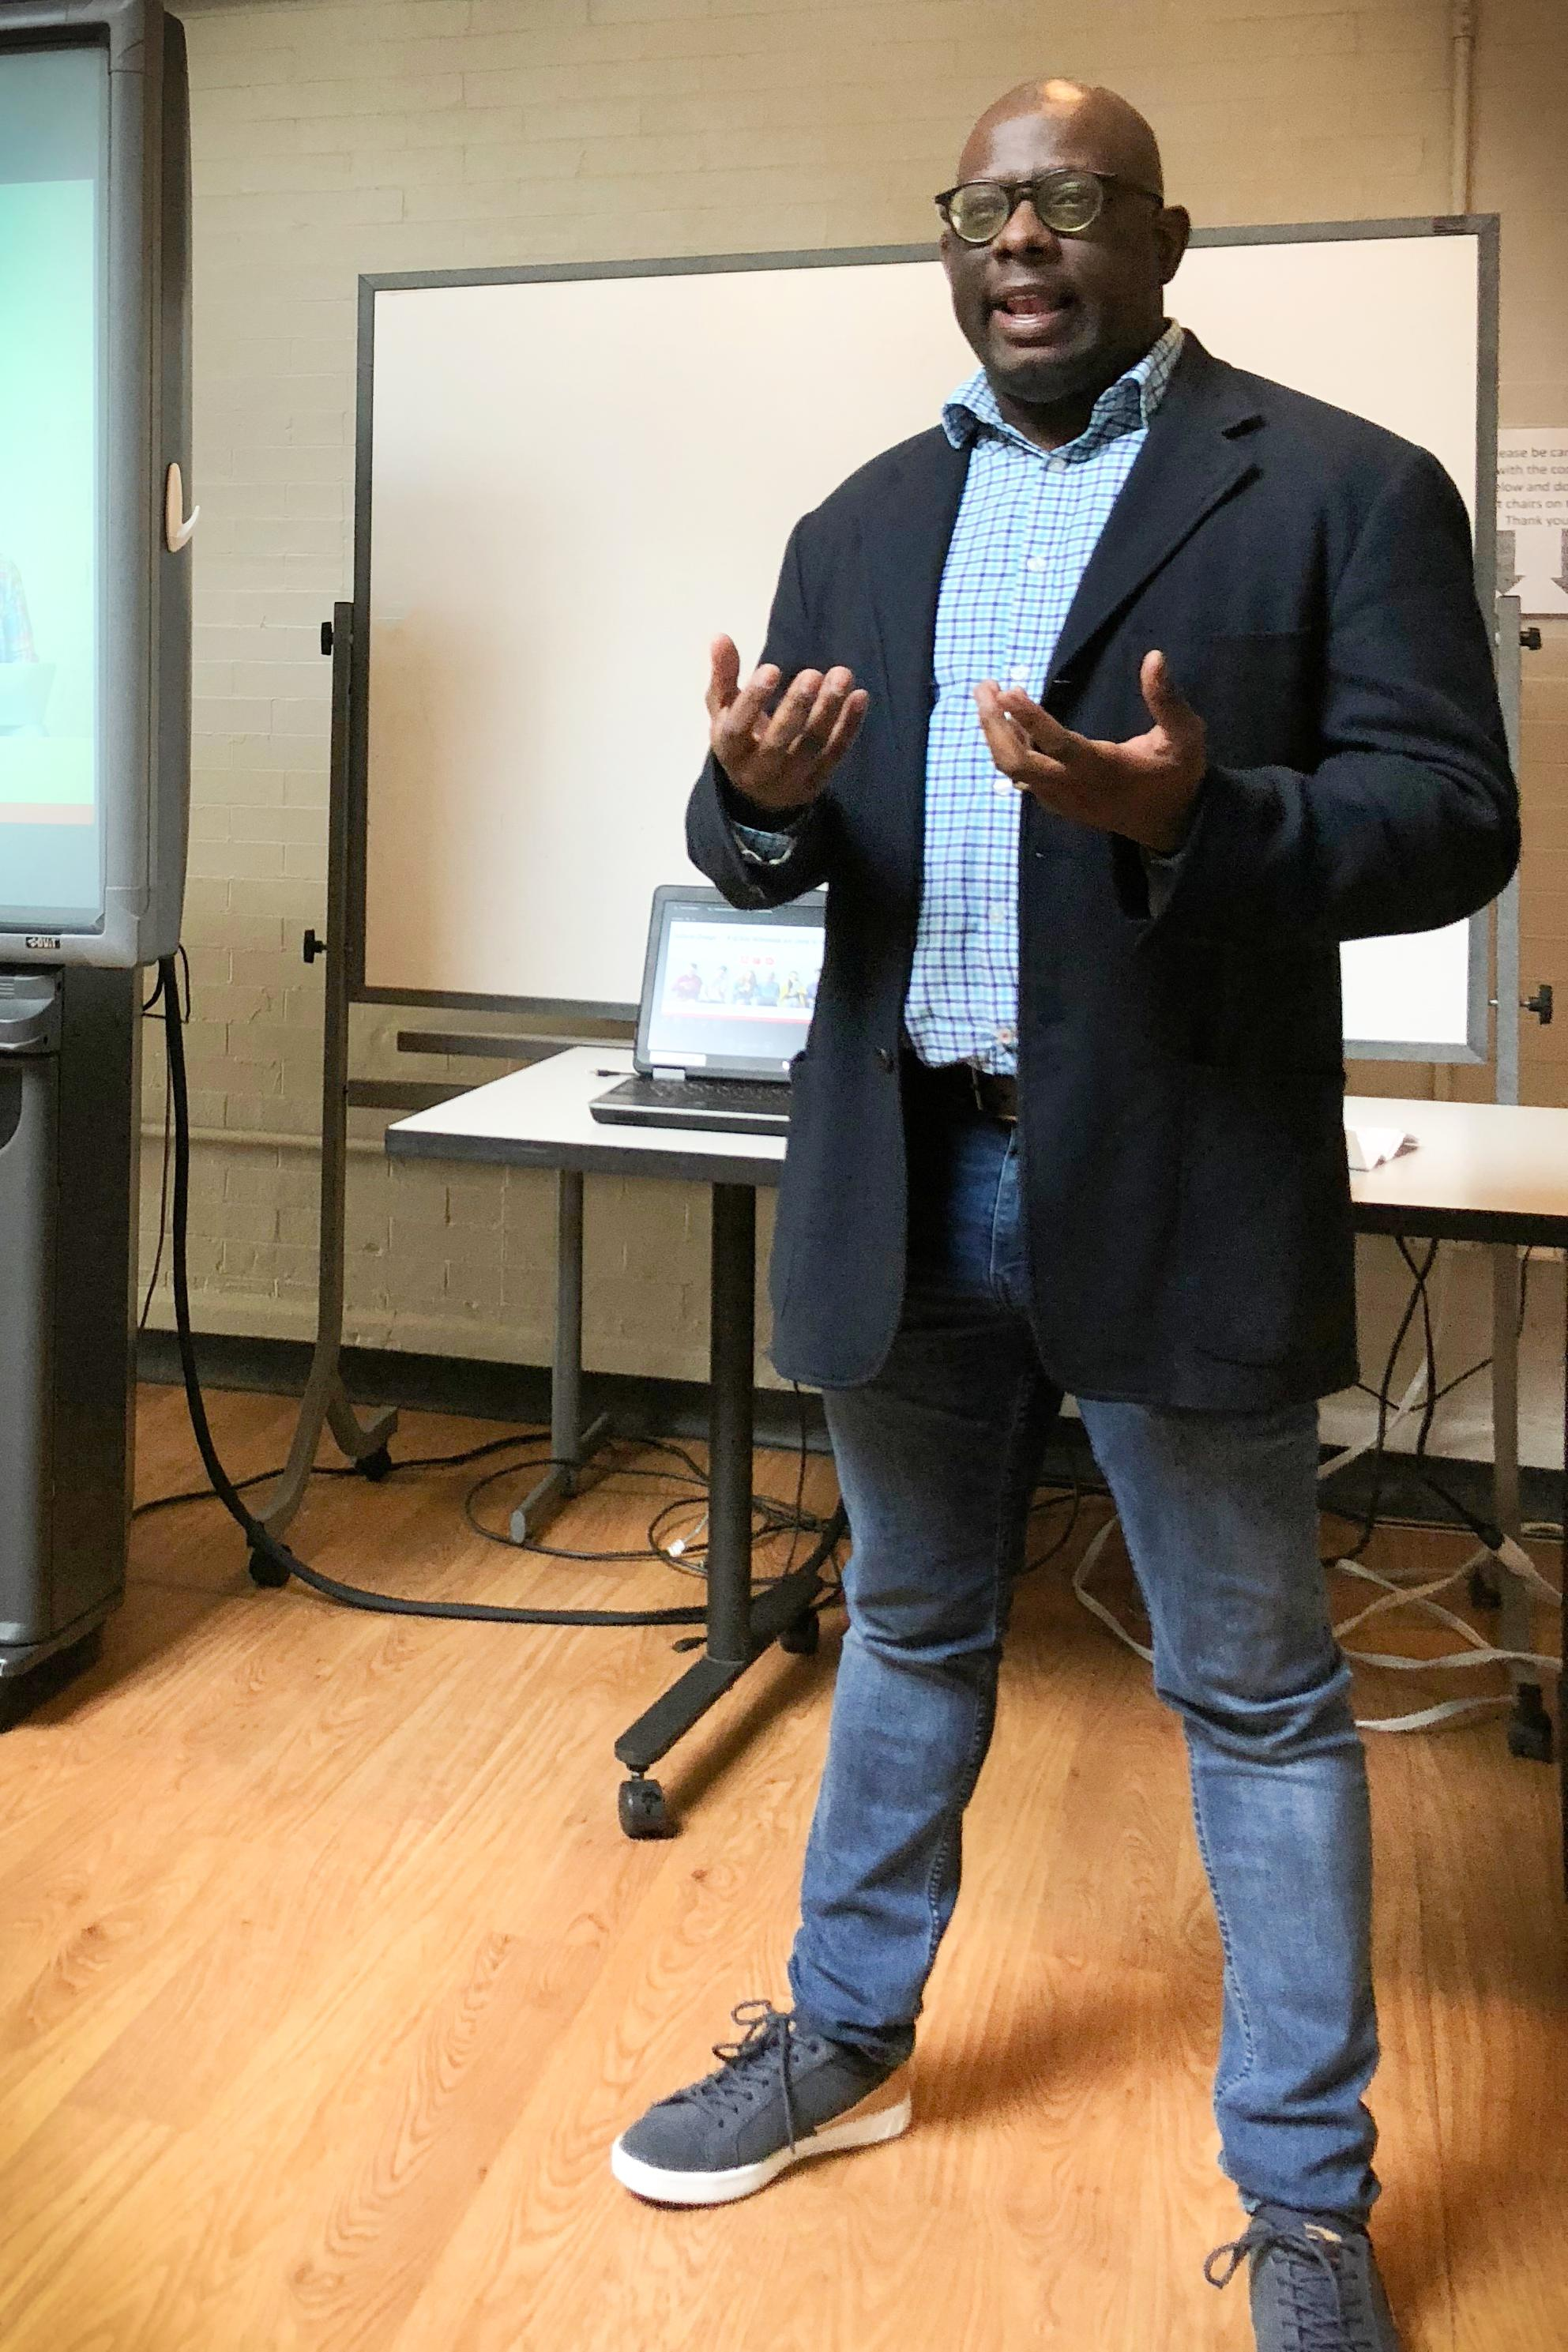 Munya Chiura '97 shares his experience as an international student with current international Lehigh students.